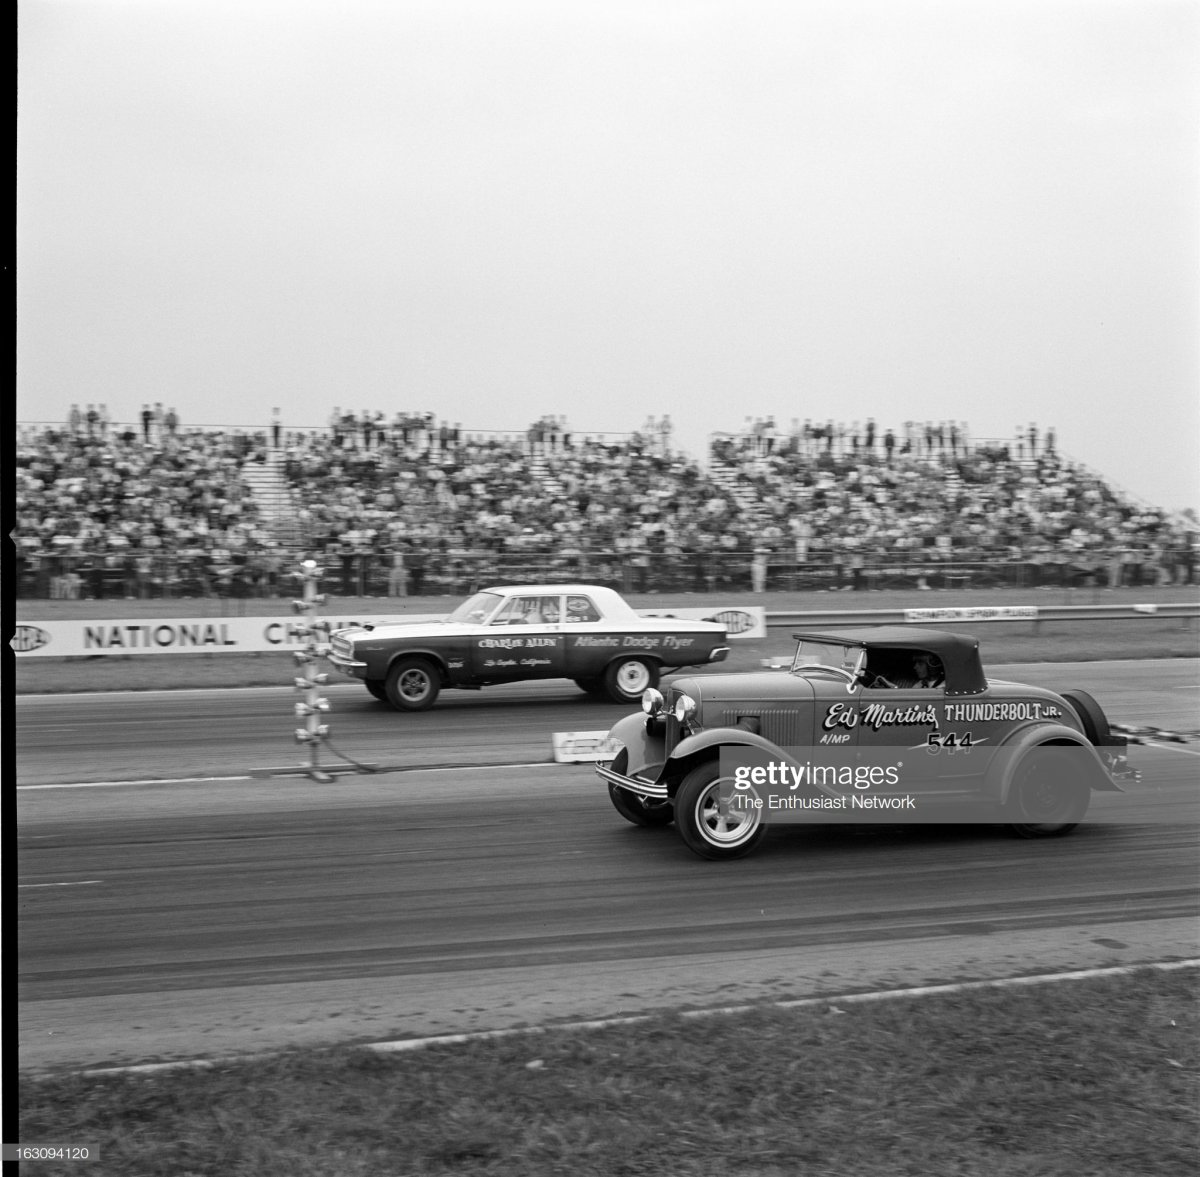 1965 NHRA Nationals - India.jpg